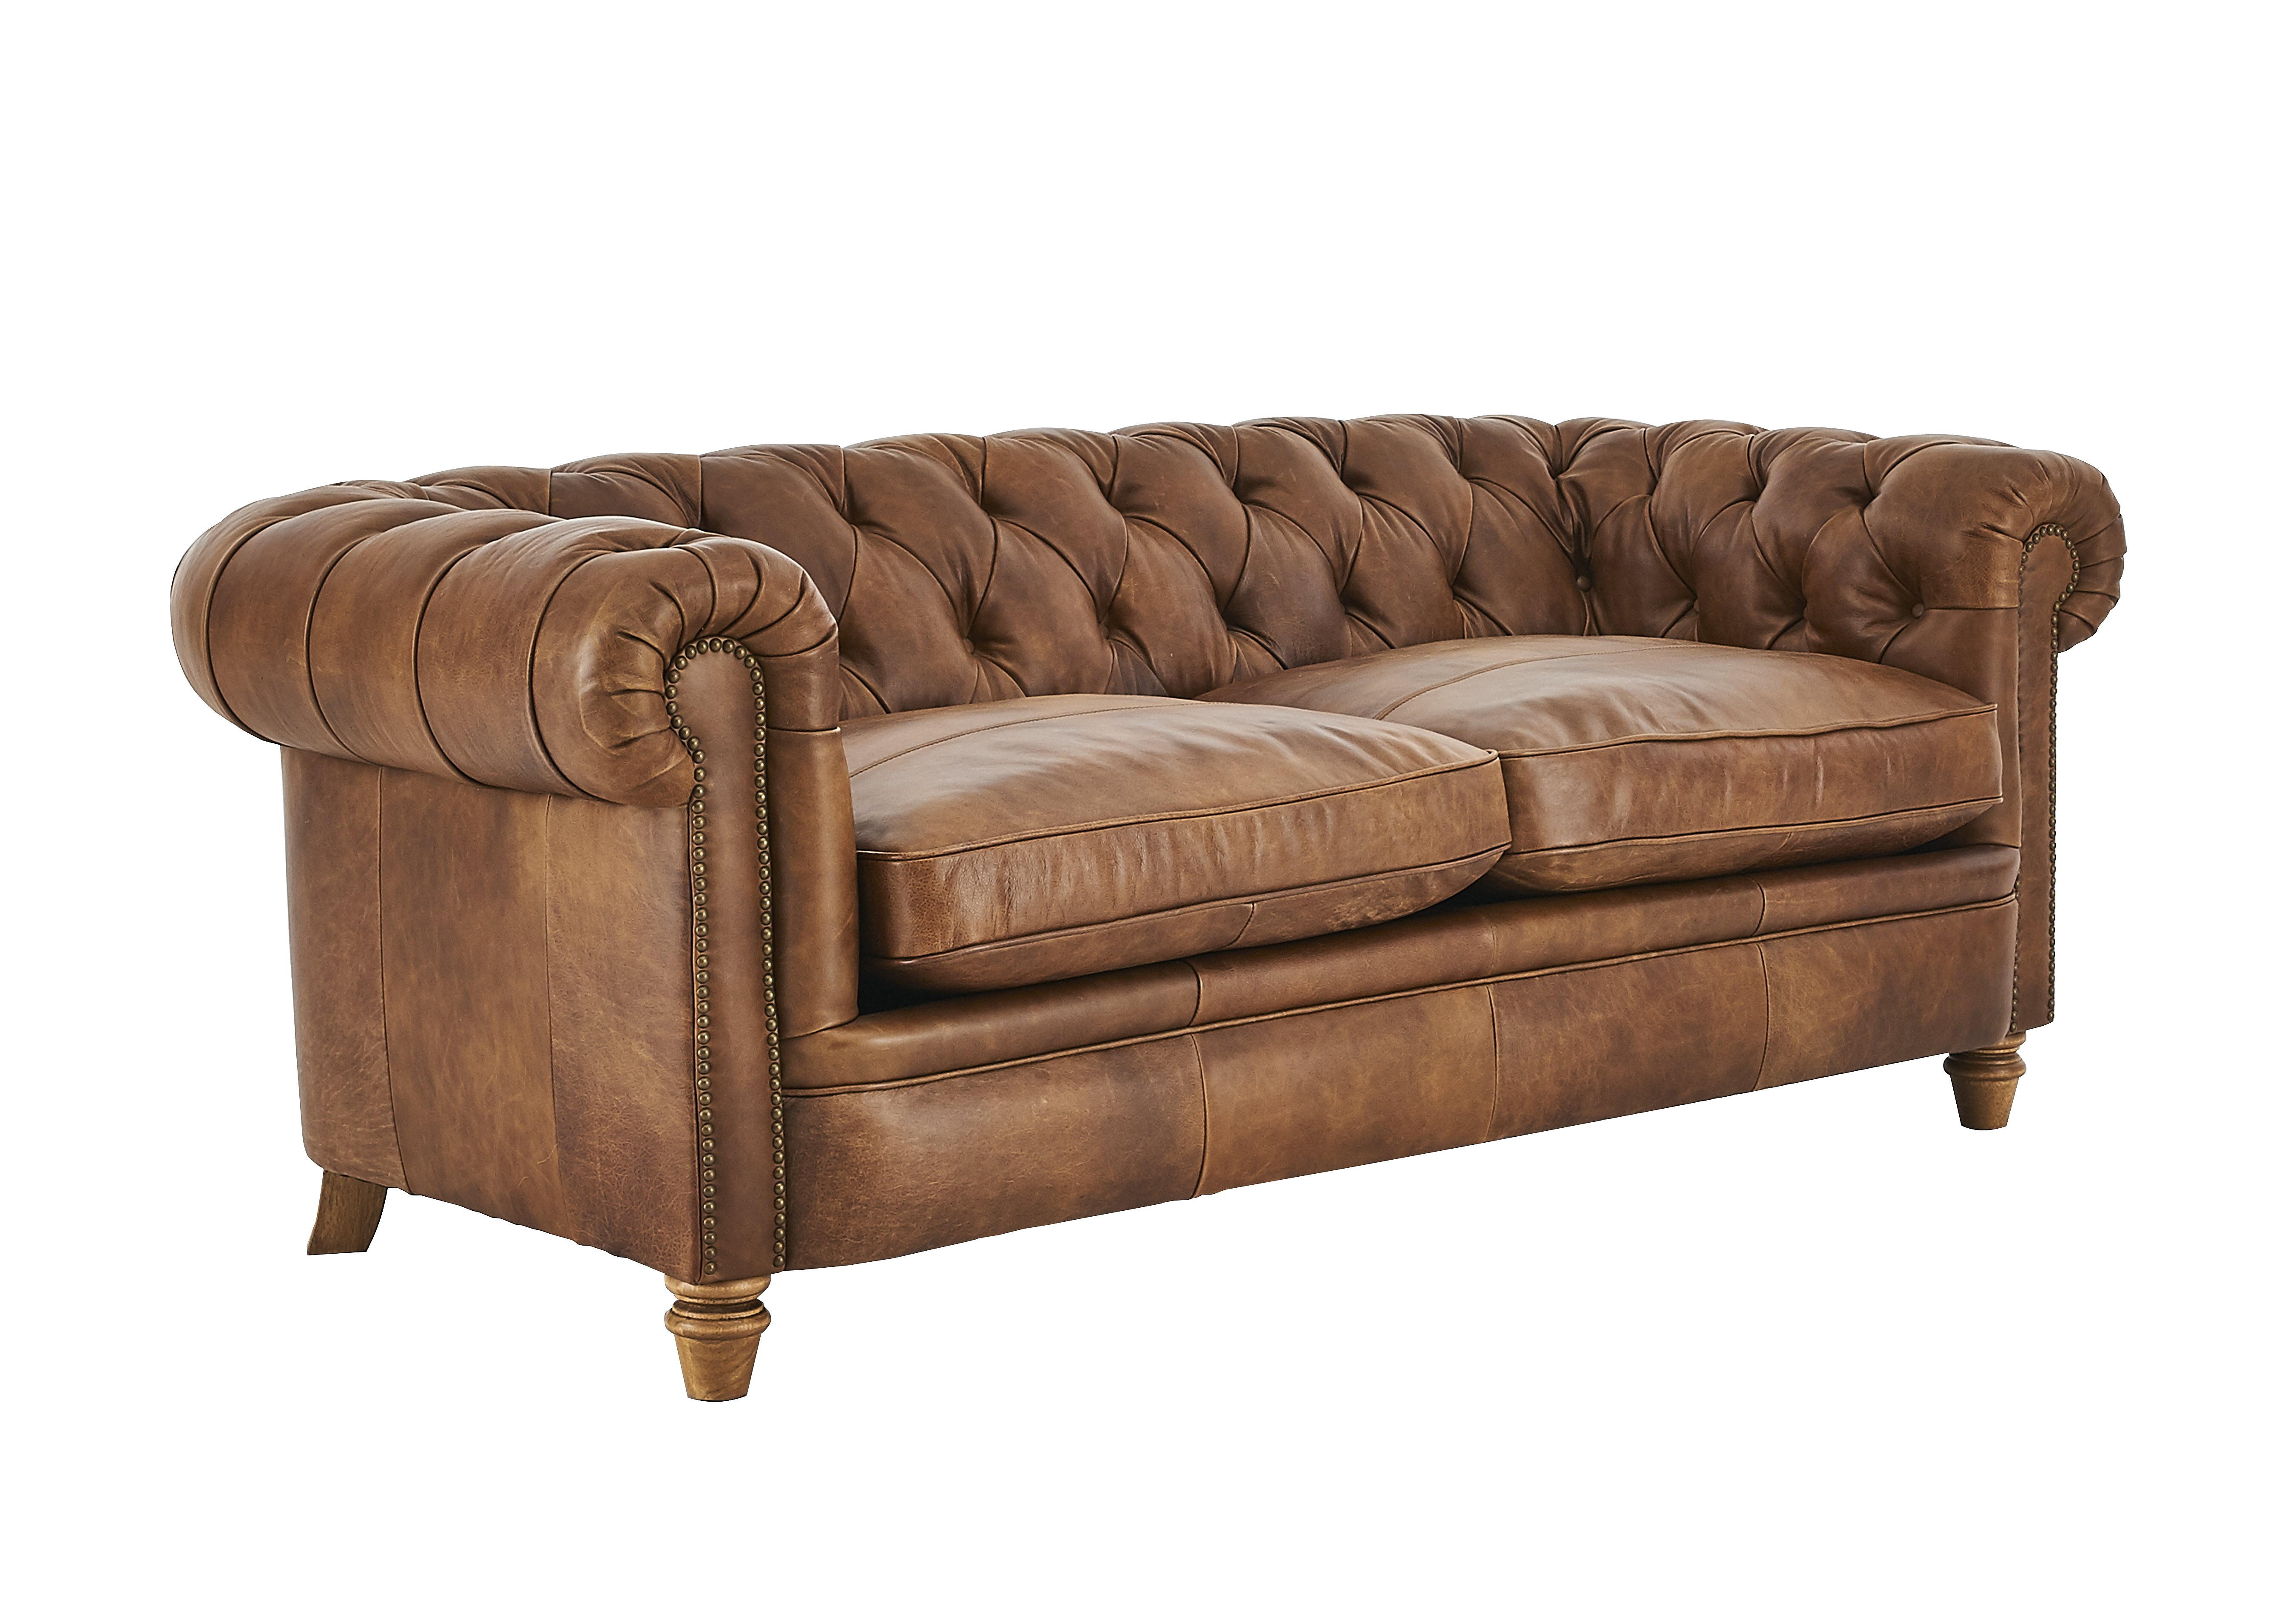 New England Newport 2 Seater Leather Sofa Furniture Village